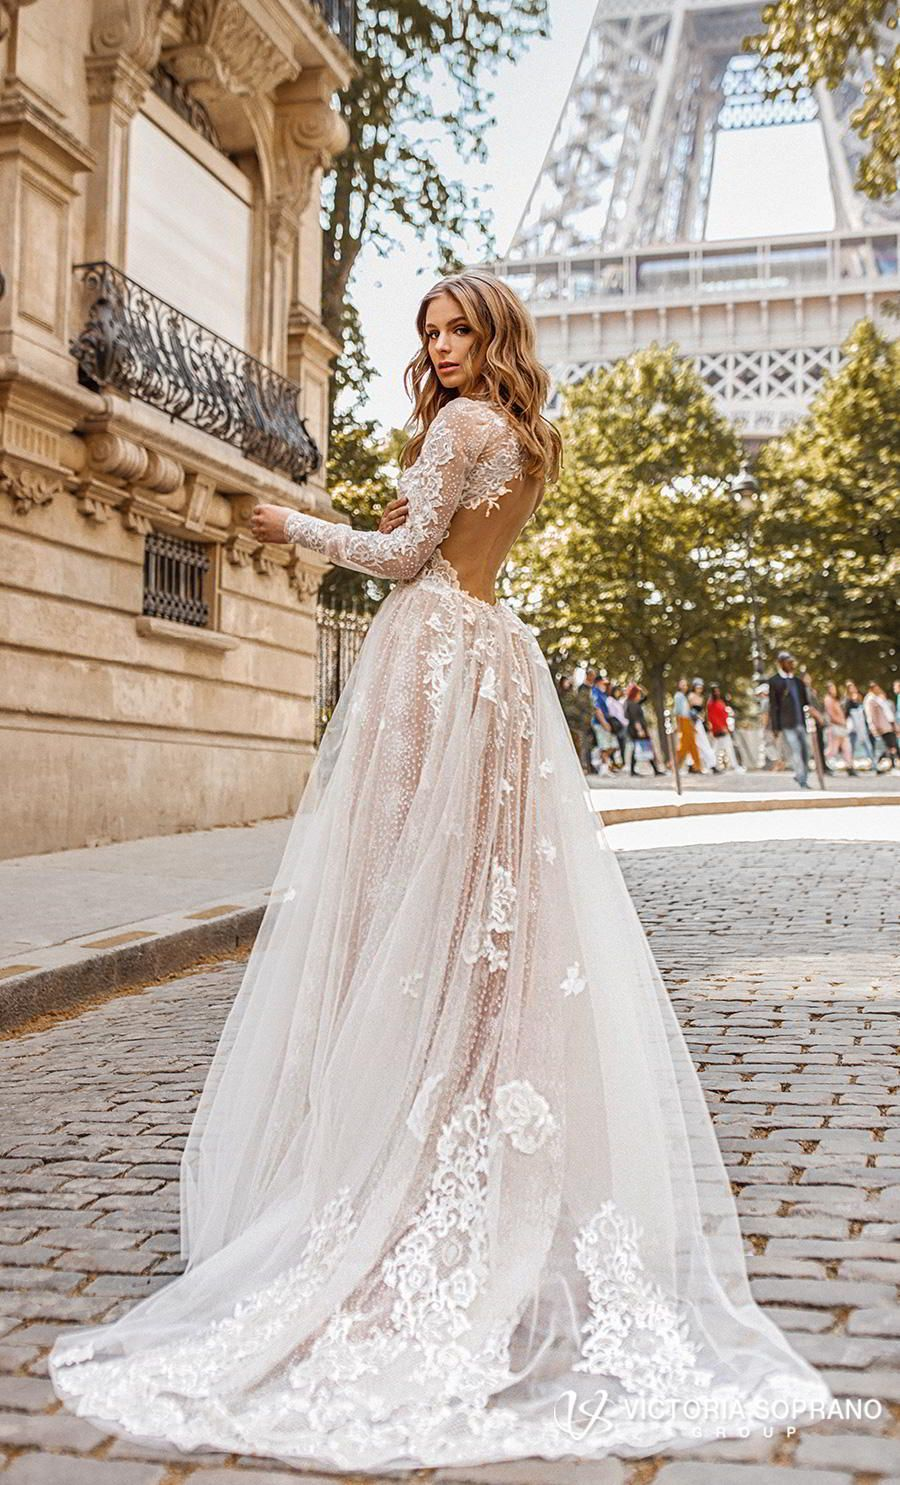 These Victoria Soprano Wedding Dresses Will Make You Swoon 2019 Love In Paris Bridal Collection Wedding Inspirasi Best Wedding Dresses Wedding Dresses Lace Dream Wedding Dresses [ 1485 x 900 Pixel ]